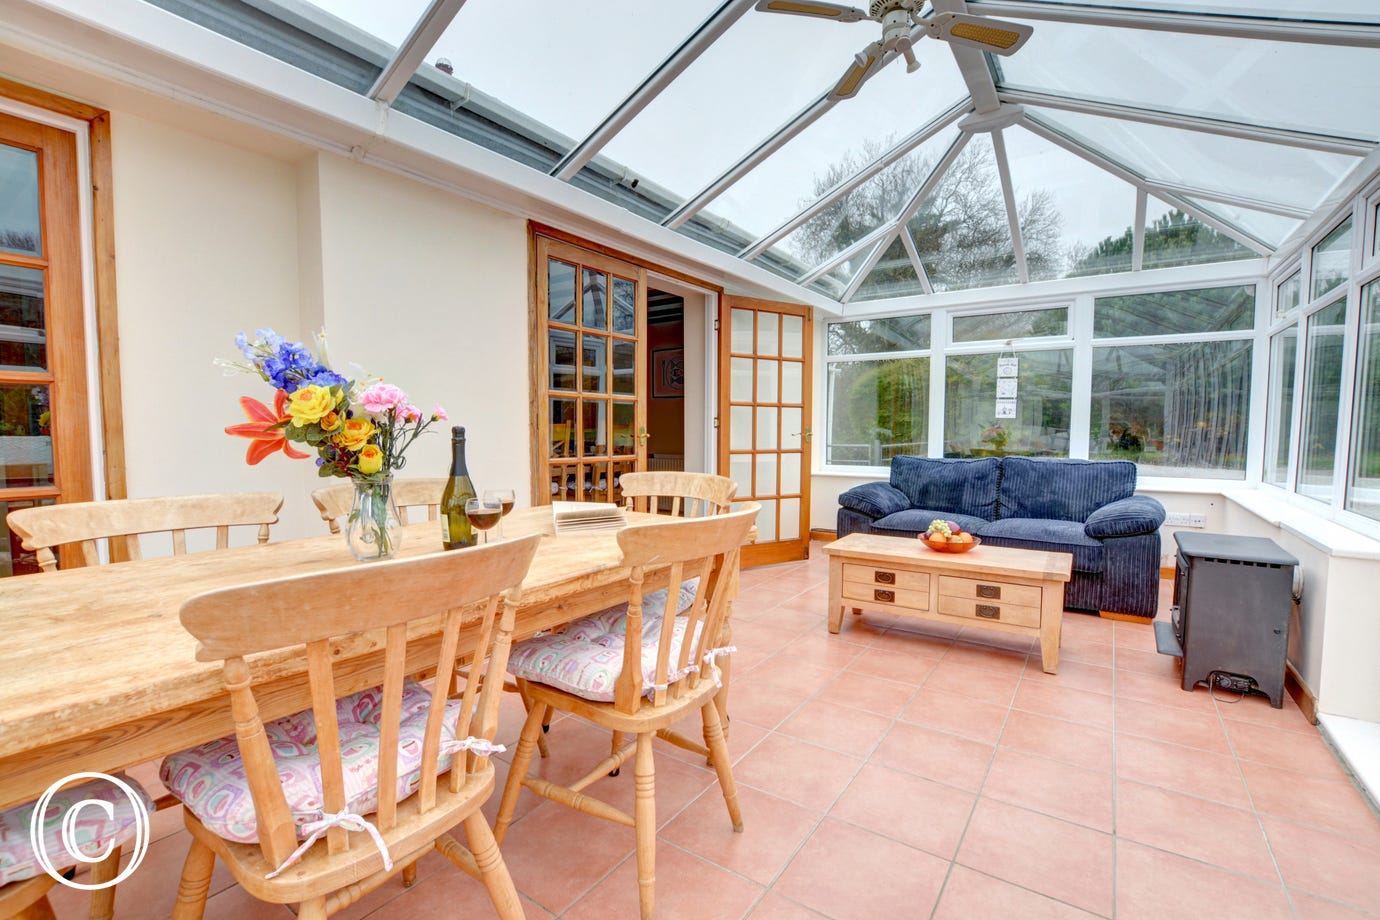 Large conservatory with dining table & chairs and seating